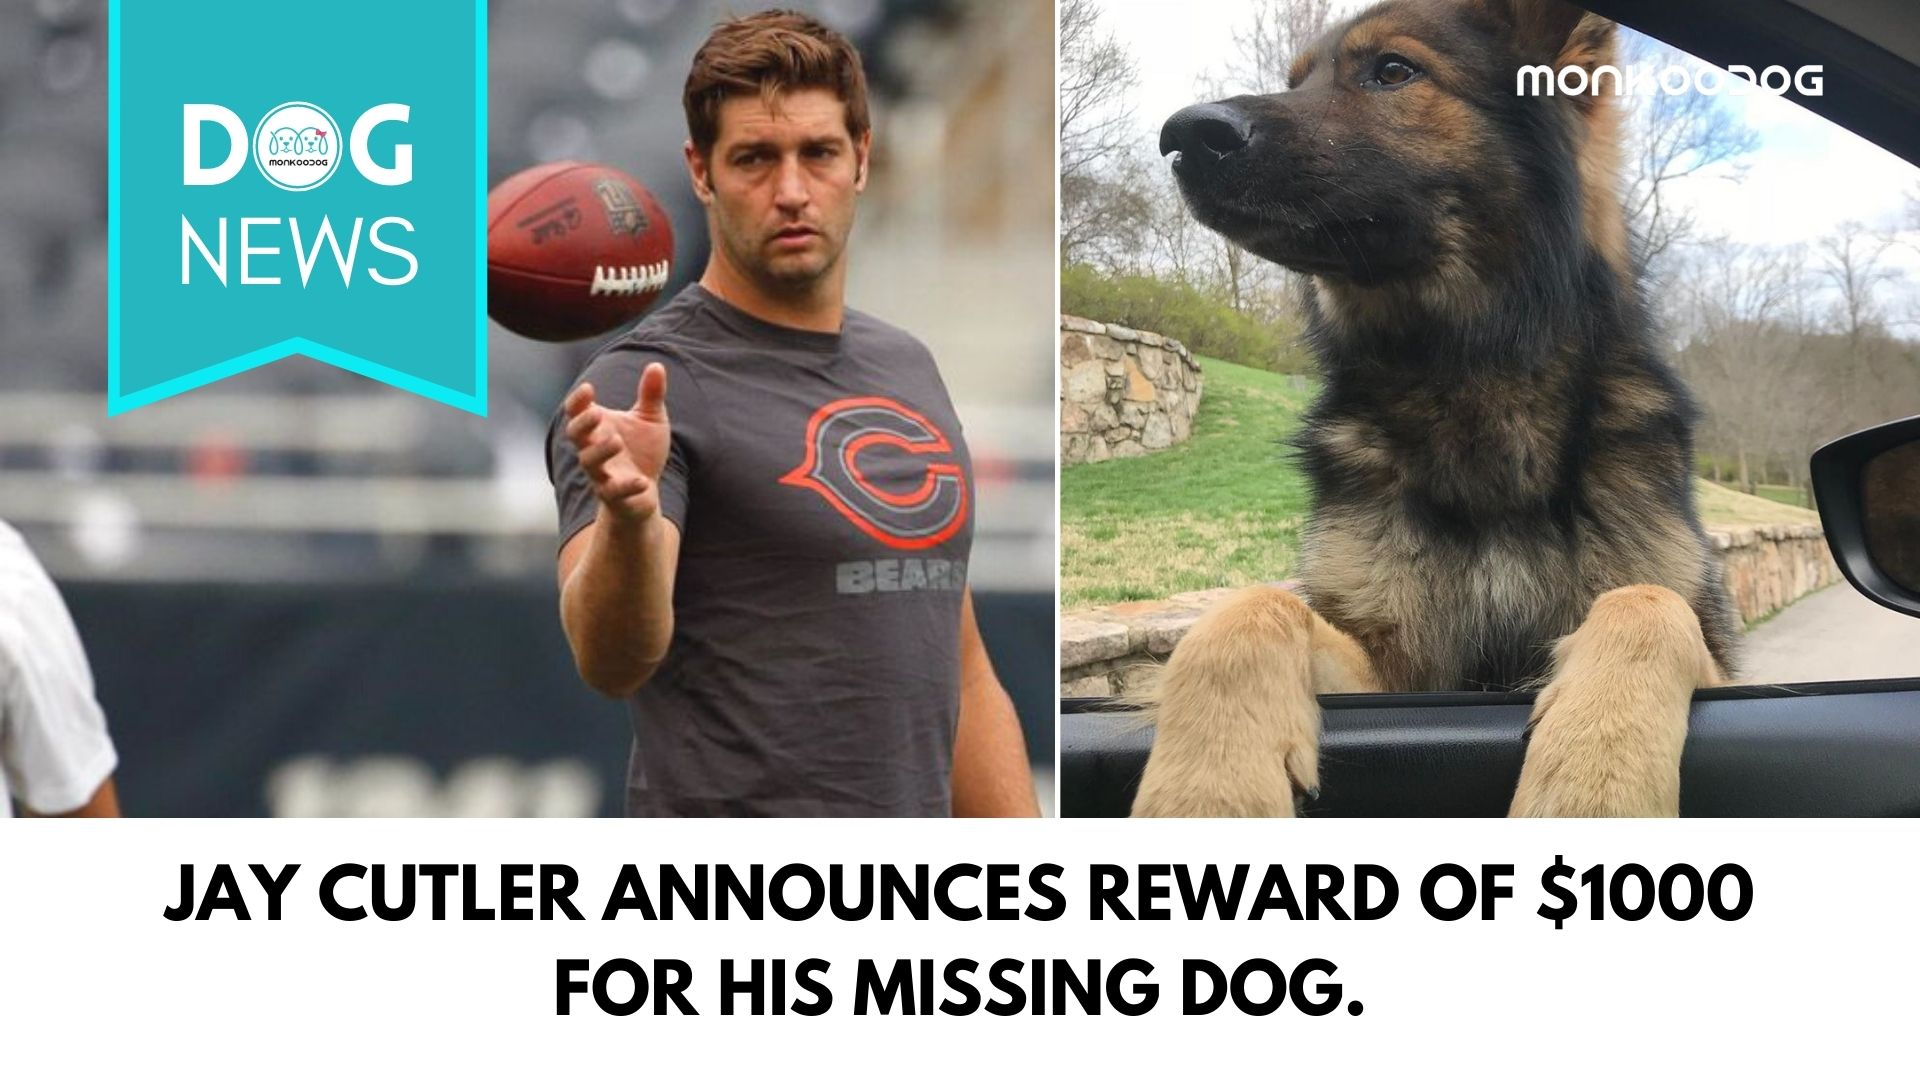 Jay Cutler Announces Reward of $1000 For His Missing Dog.